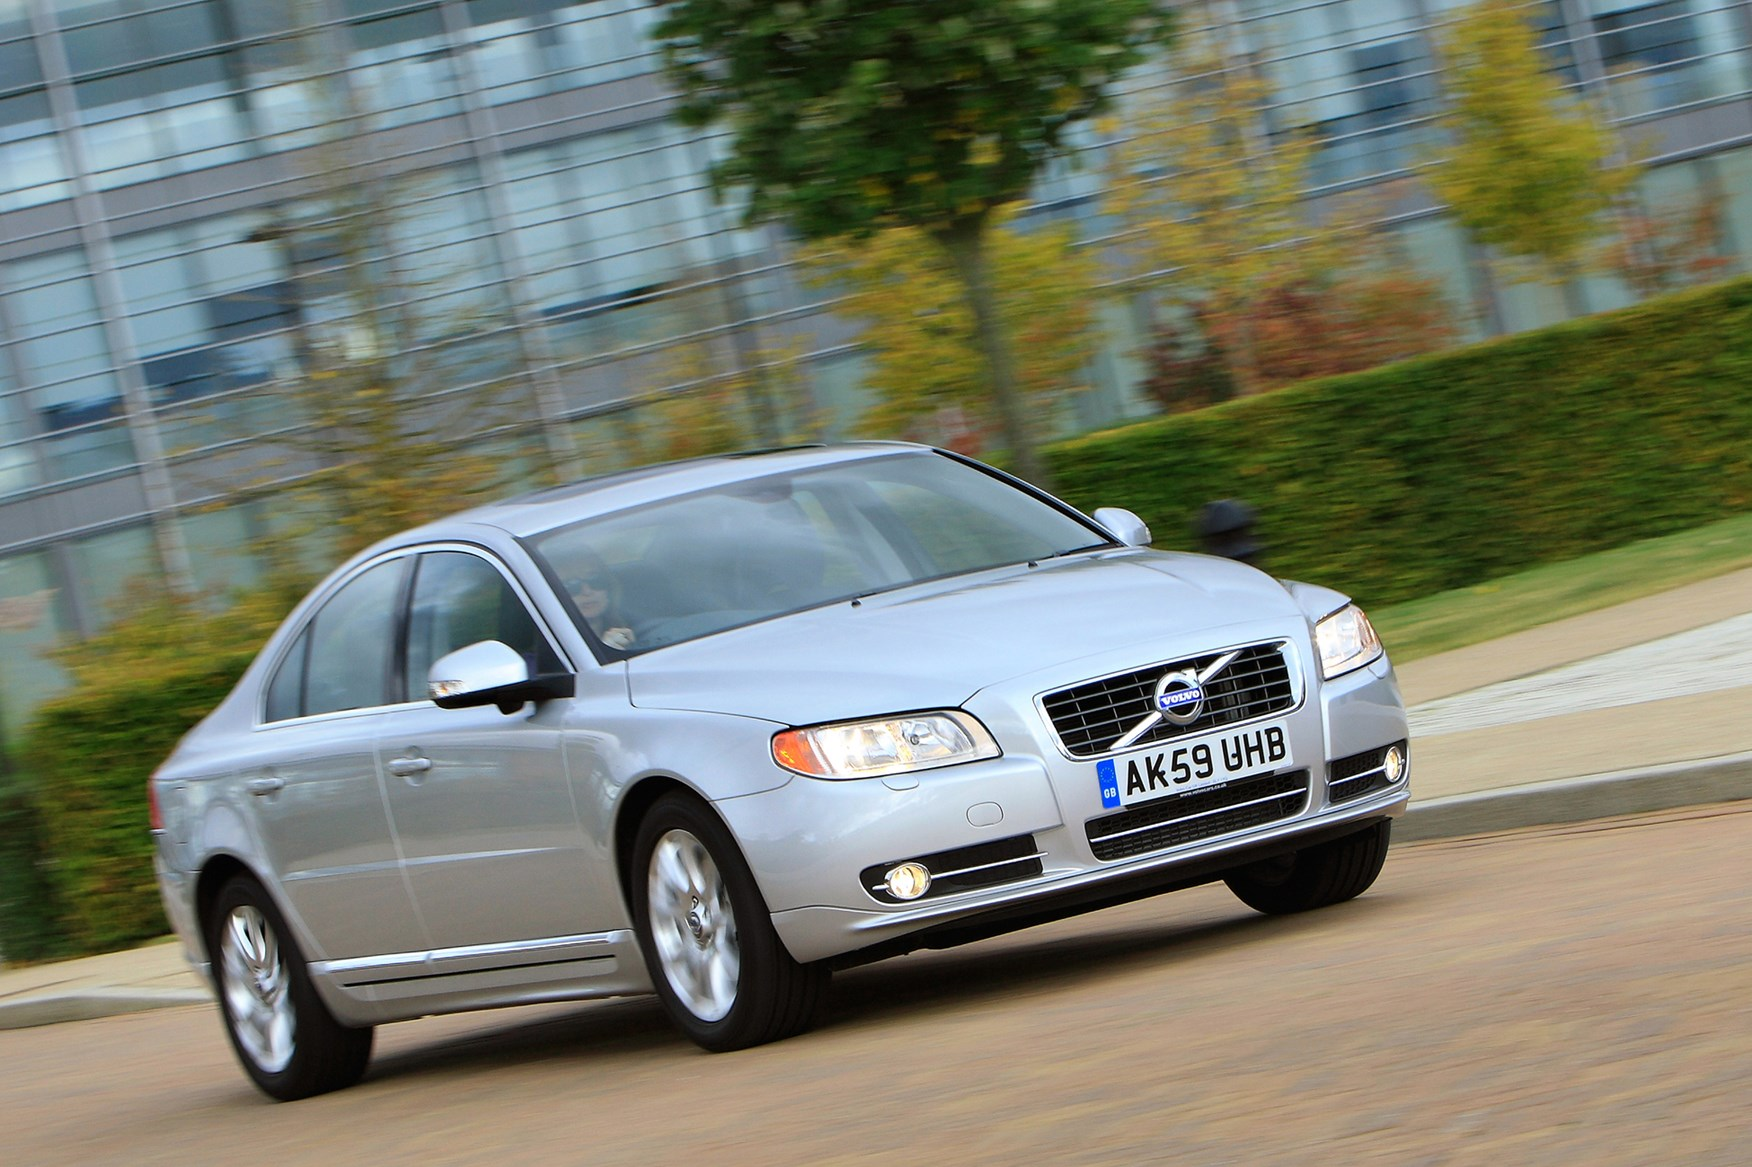 Volvo s80 saloon 2006 2016 driving performance parkers view all images of the volvo s80 06 16 publicscrutiny Image collections